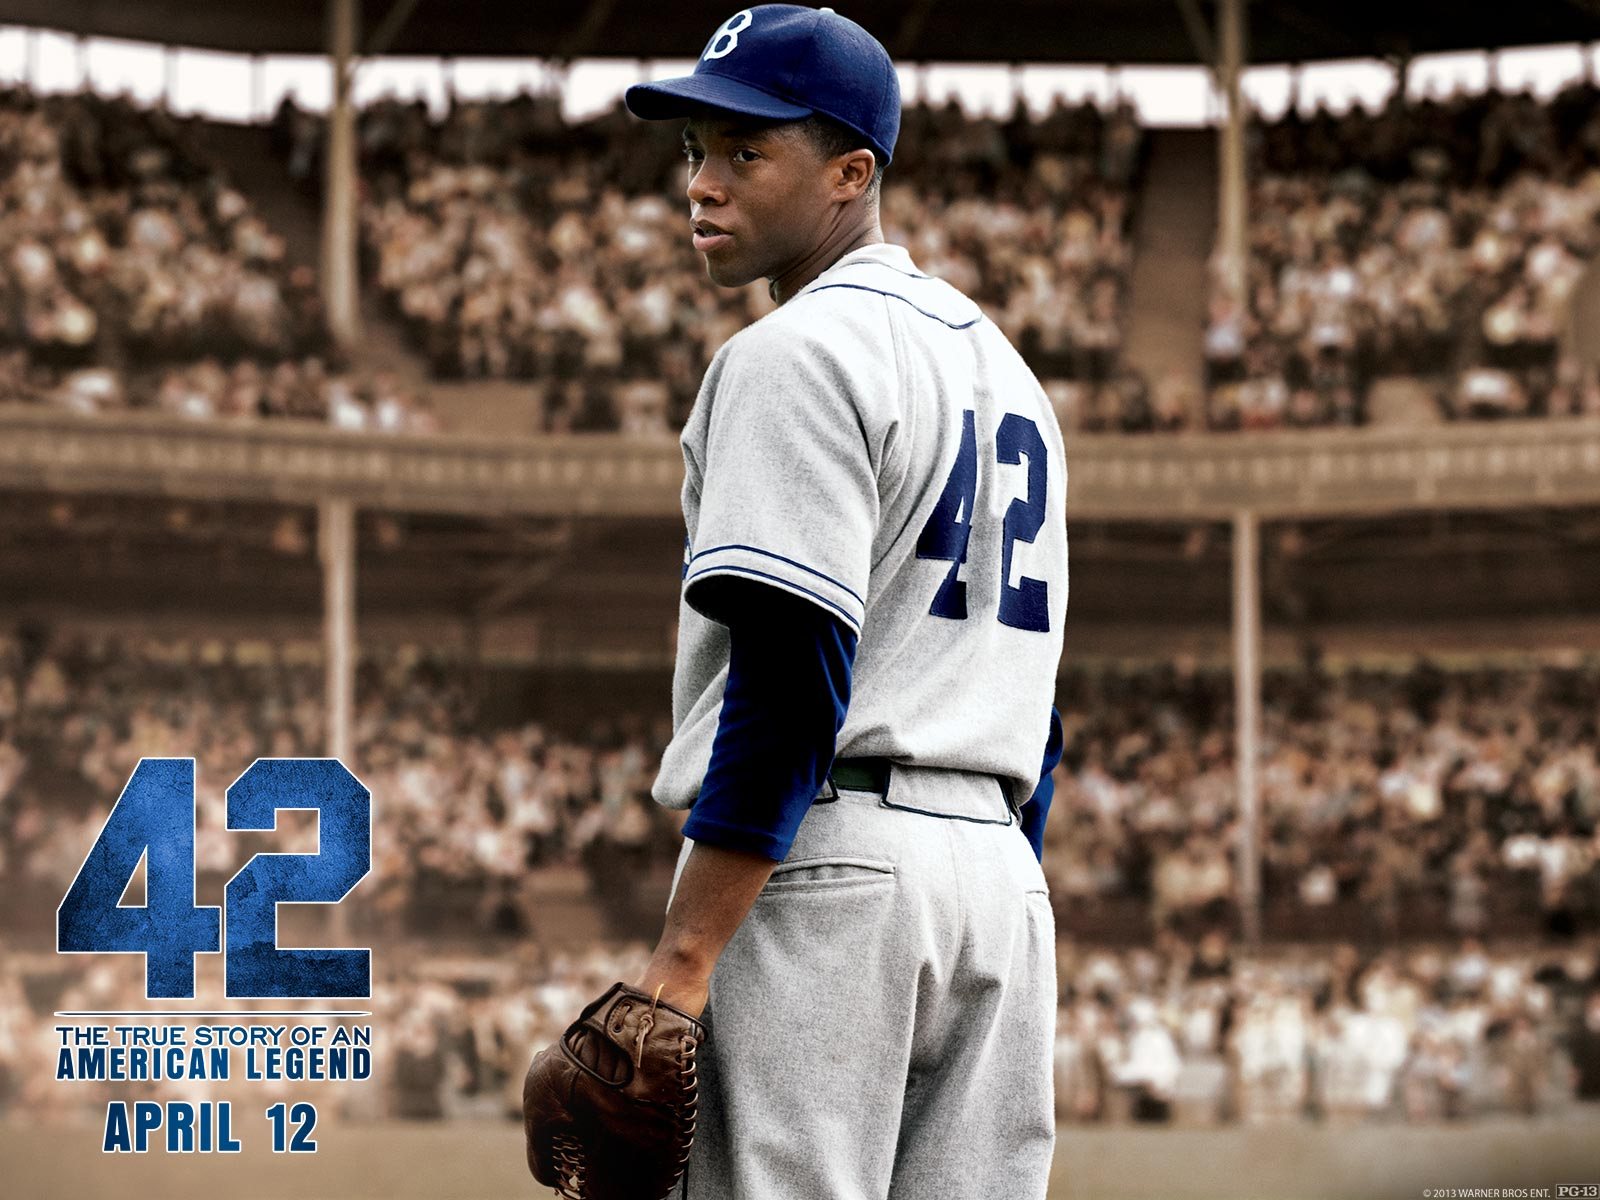 Jackie Robinson S Faith Missing From 42 Movie